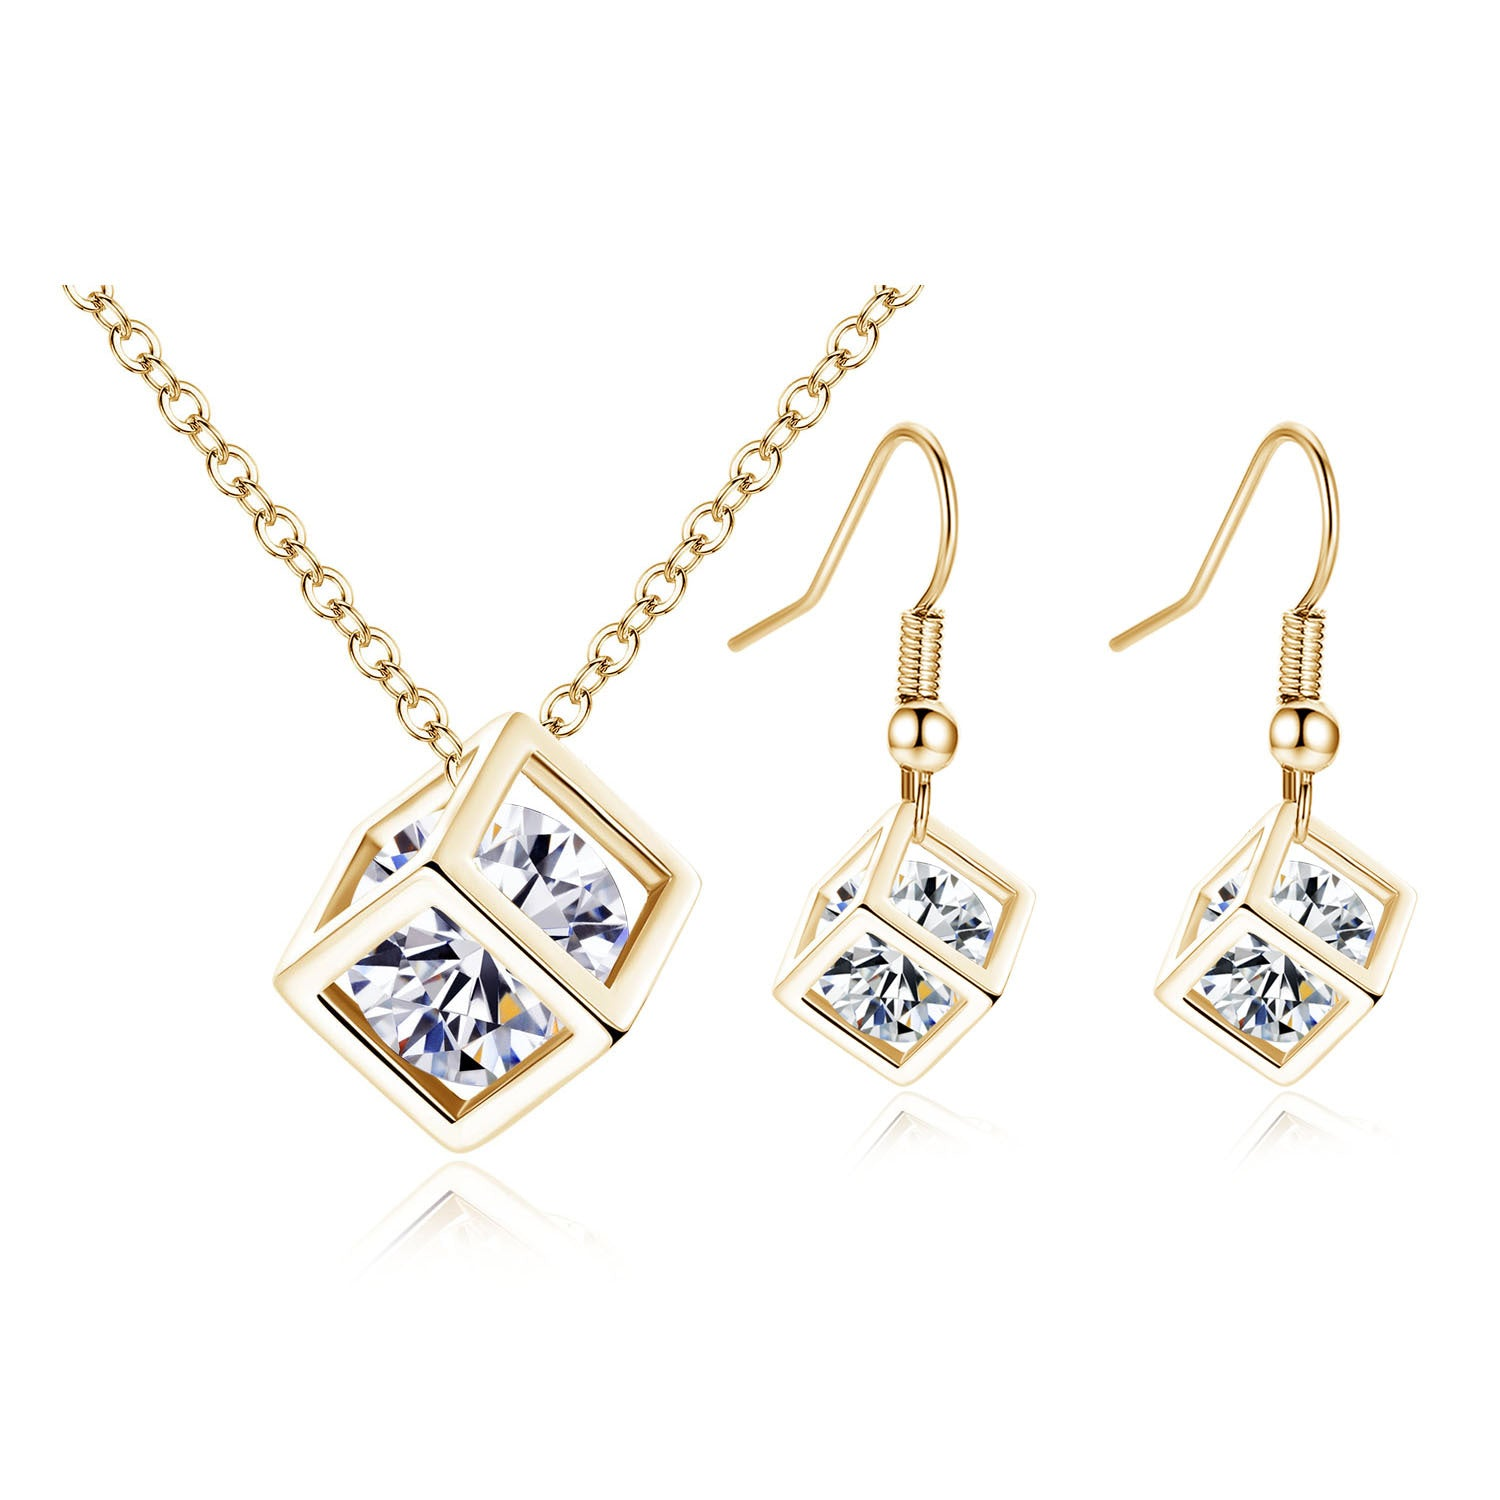 Water cube zircon set